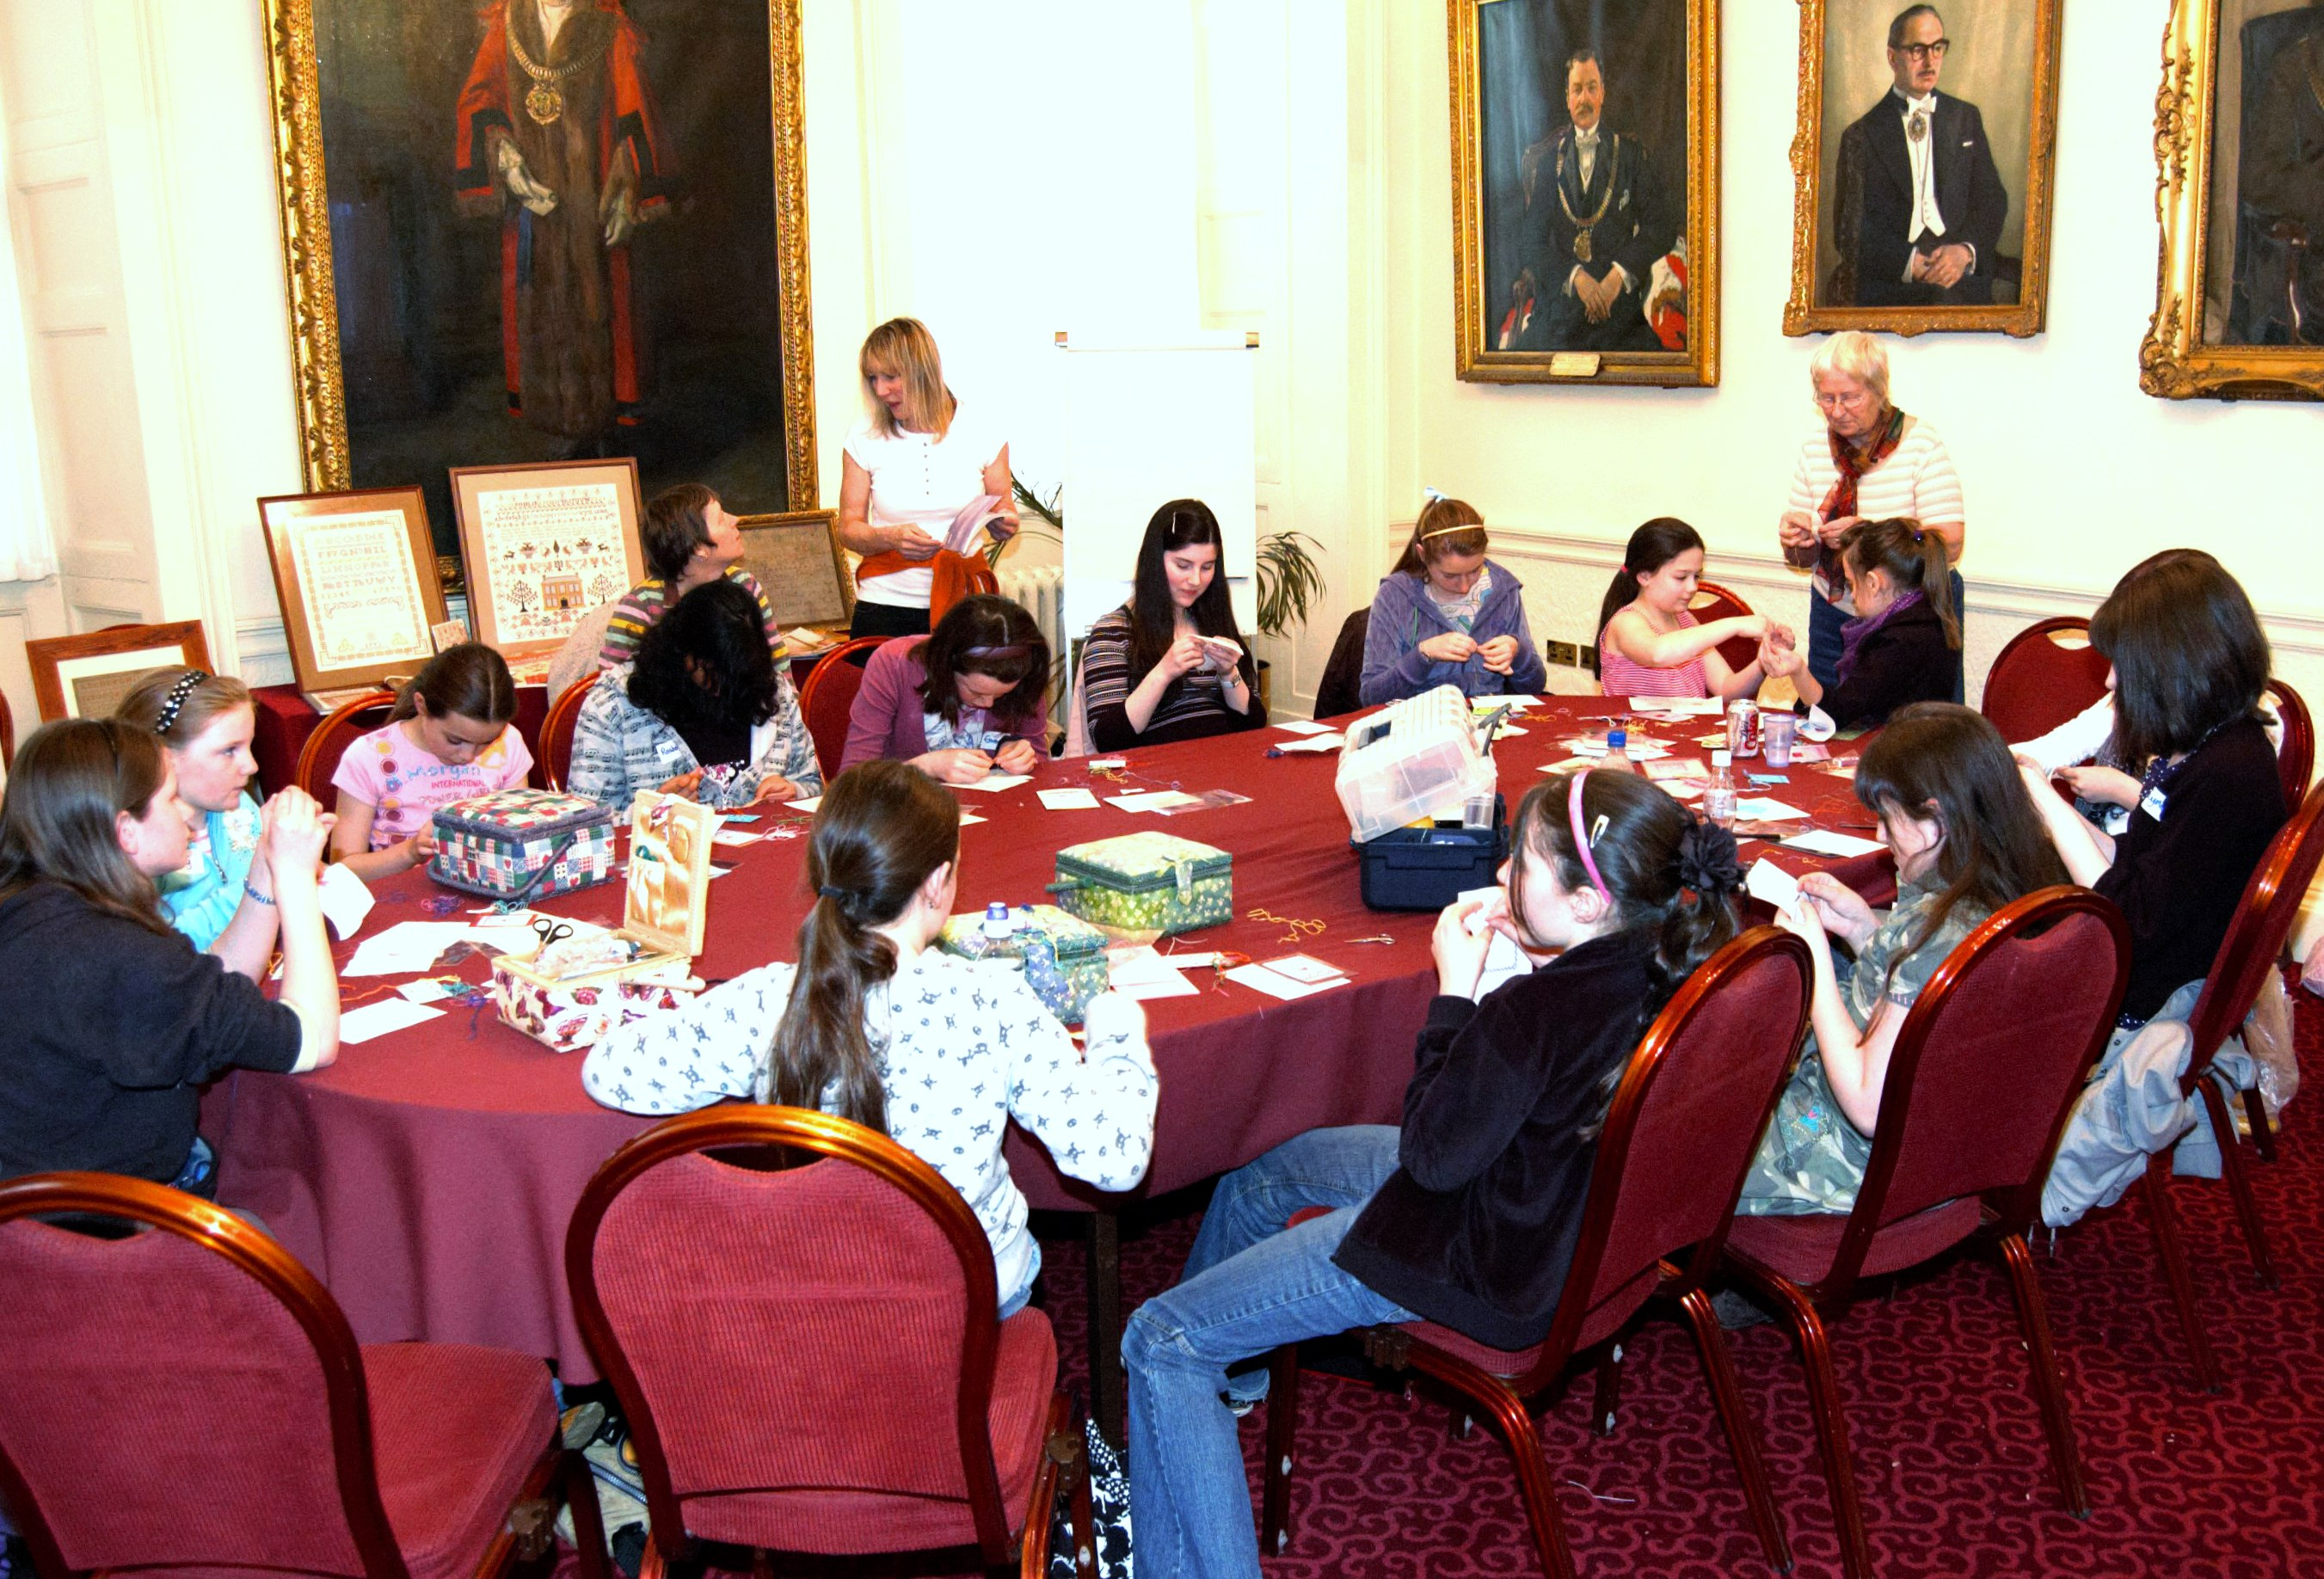 workshop for Young Embroiderers at NW Regional Day 2008 in Liverpool Town Hall